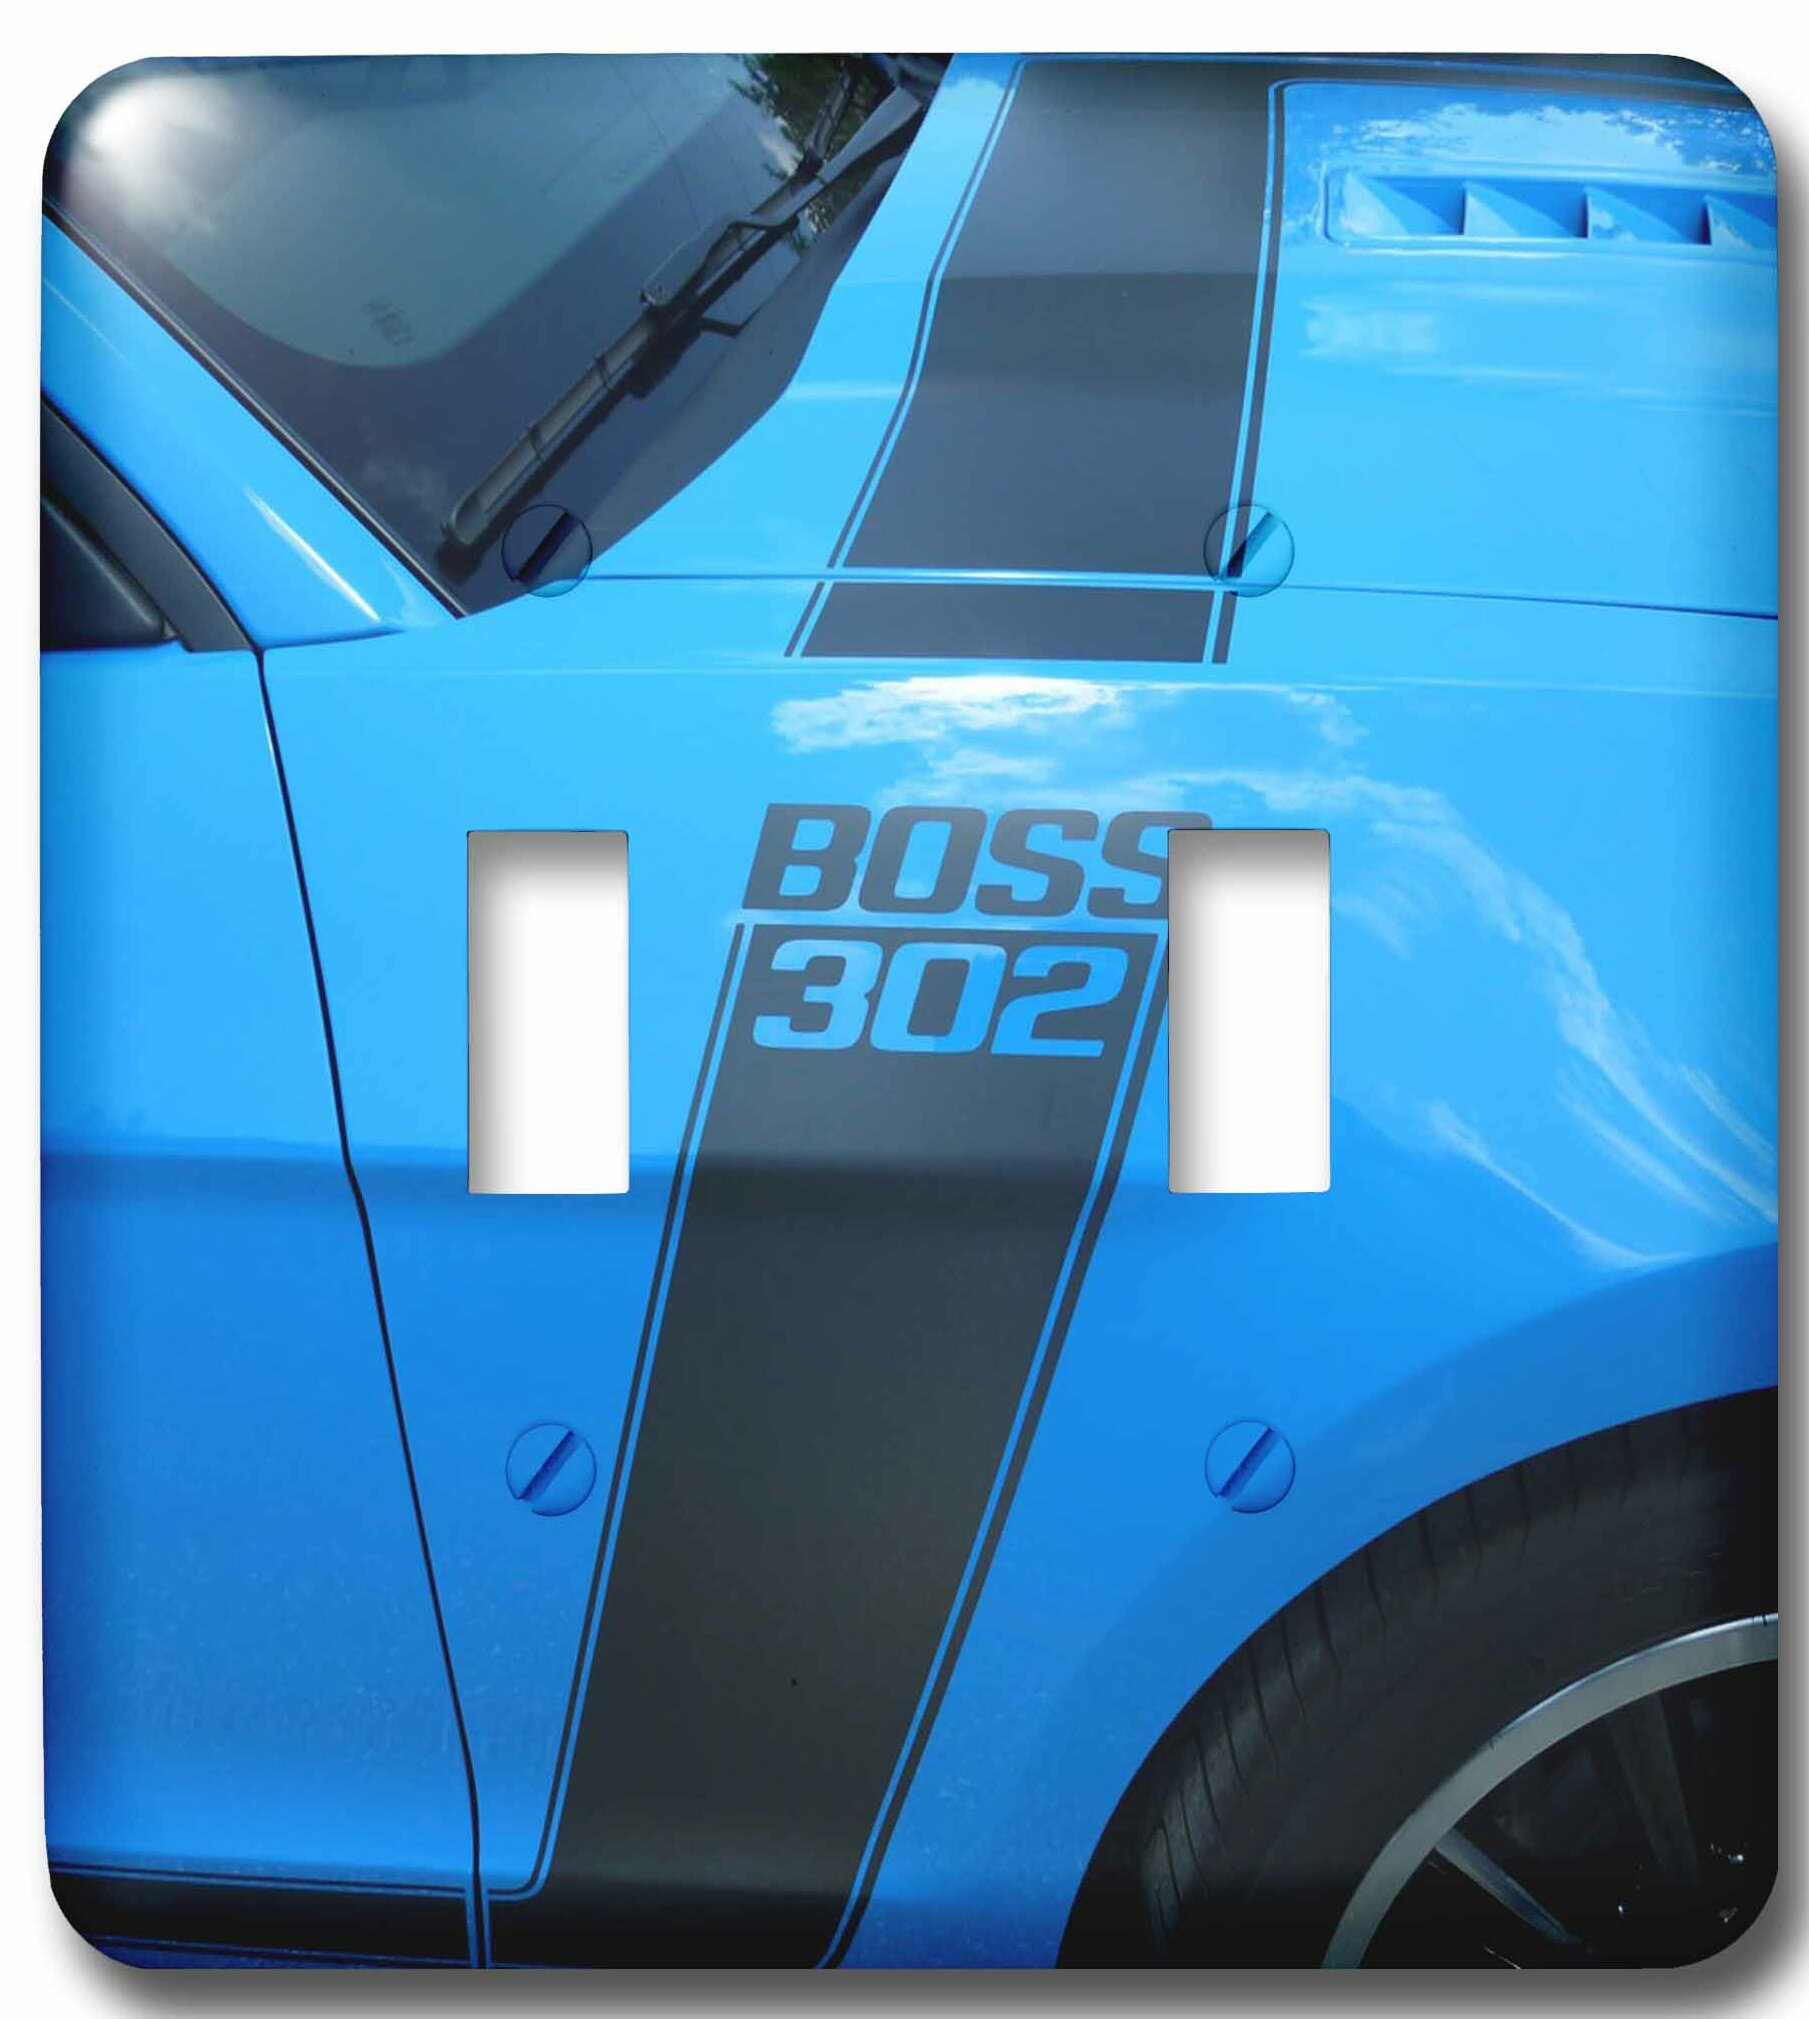 3drose The Great Boss 302 Mustang At Car Show In Florida 2 Gang Toggle Light Switch Wall Plate Wayfair